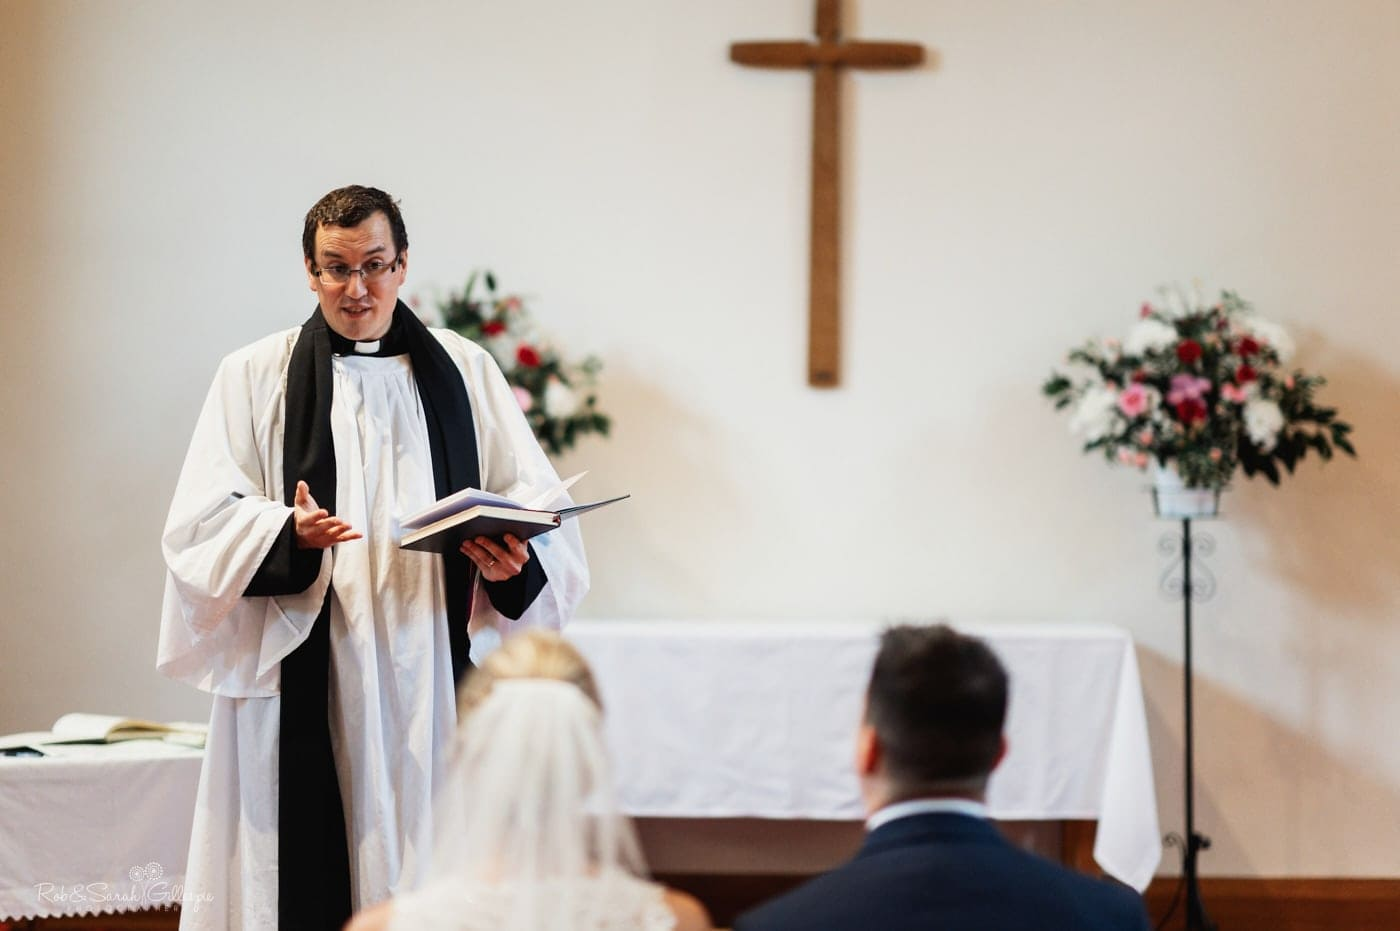 Vicars gives surmon during small wedding at St John's church Walmley